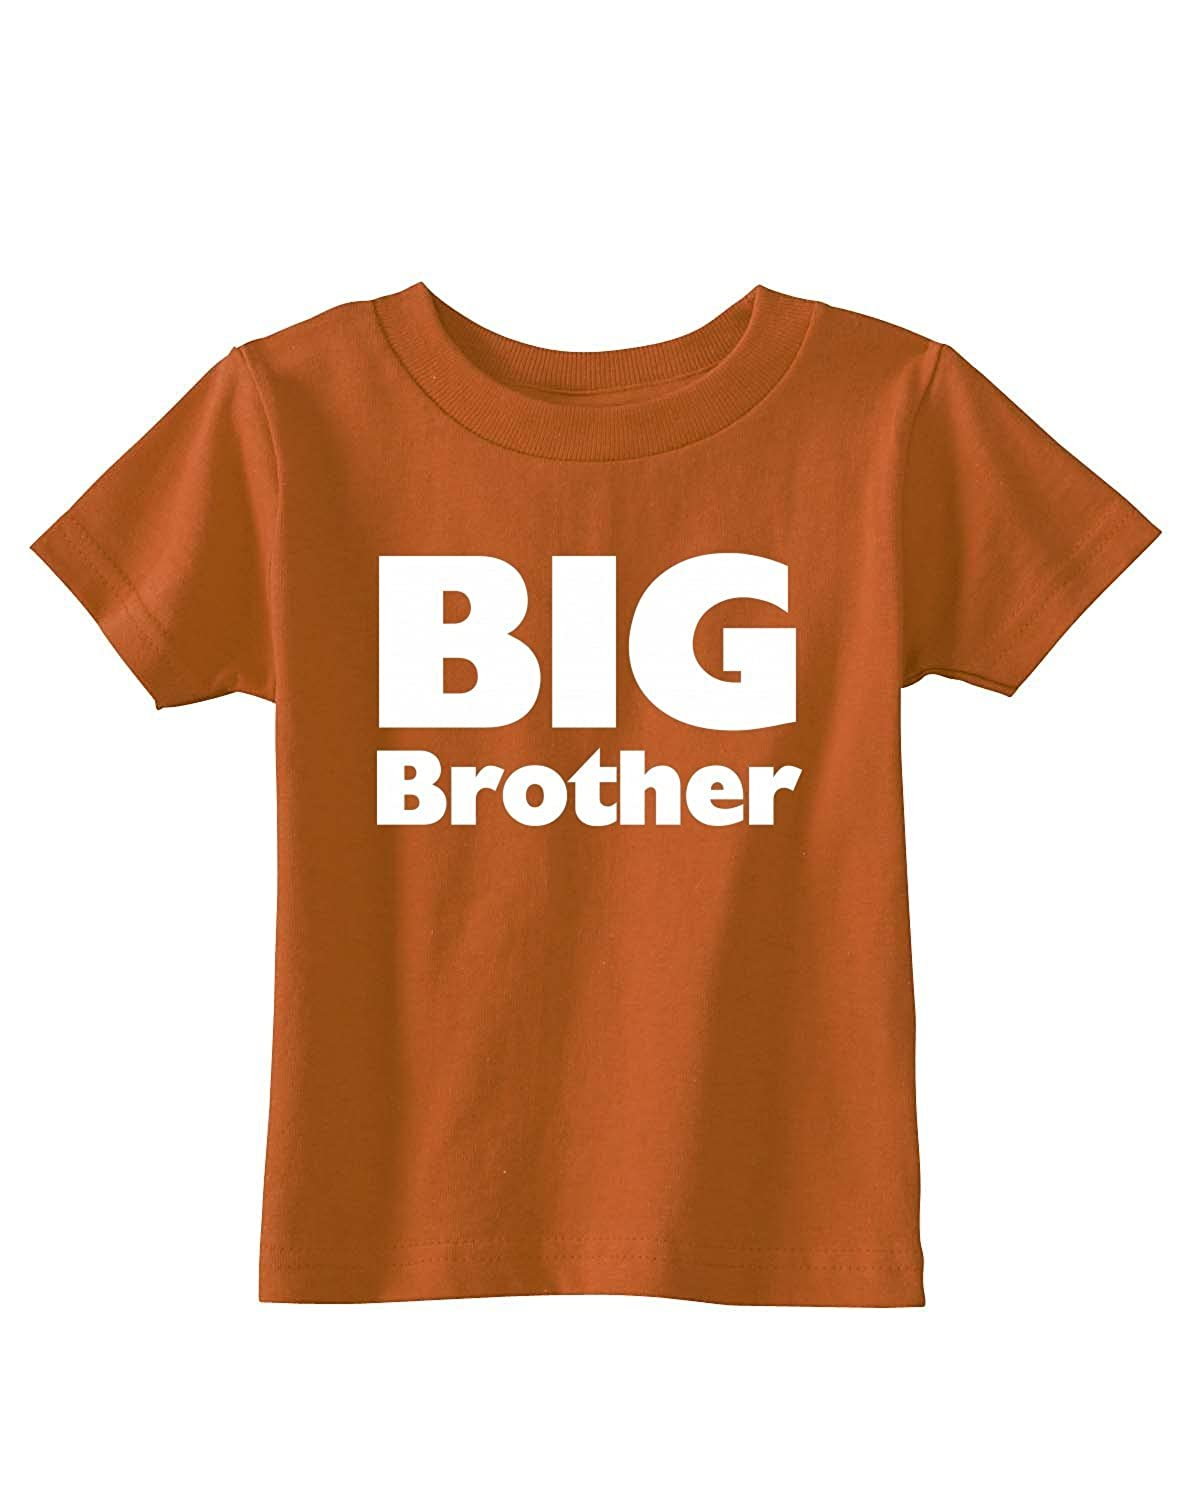 Big Brother on Infant /& Toddler Cotton T-Shirt in 21 Colors